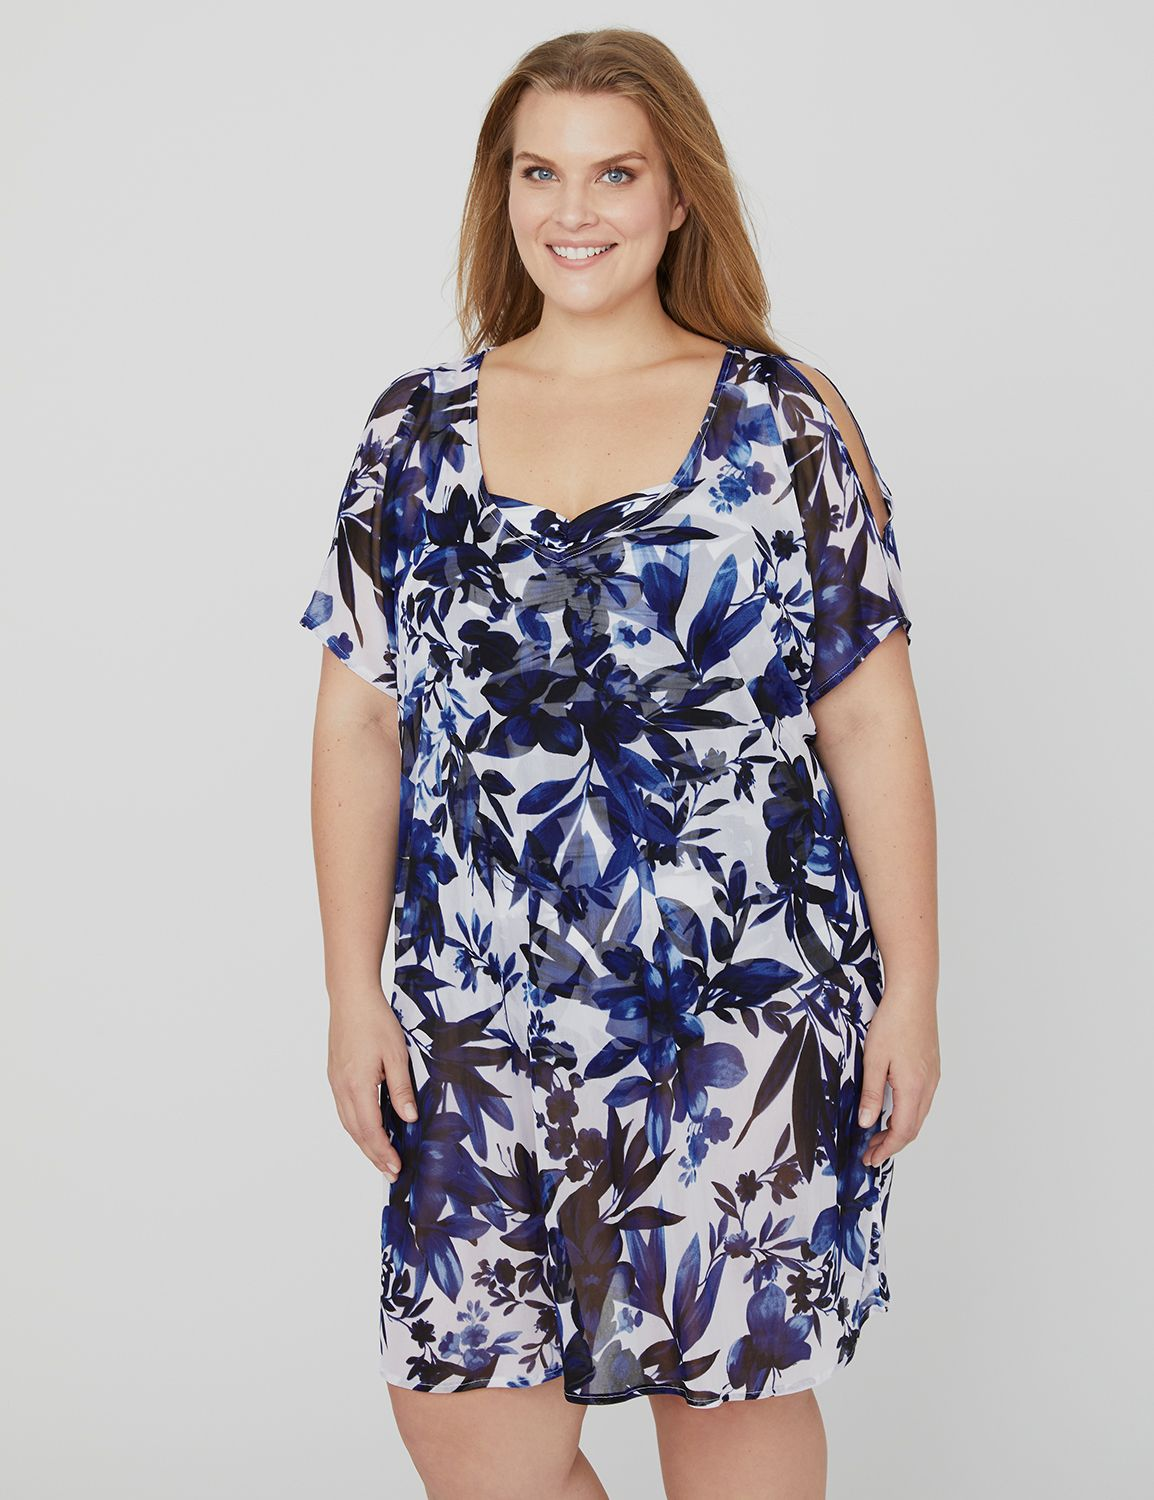 Lakeside Floral Sheer Cover-Up 1088510-Printed Mesh Cover-up MP-300096388